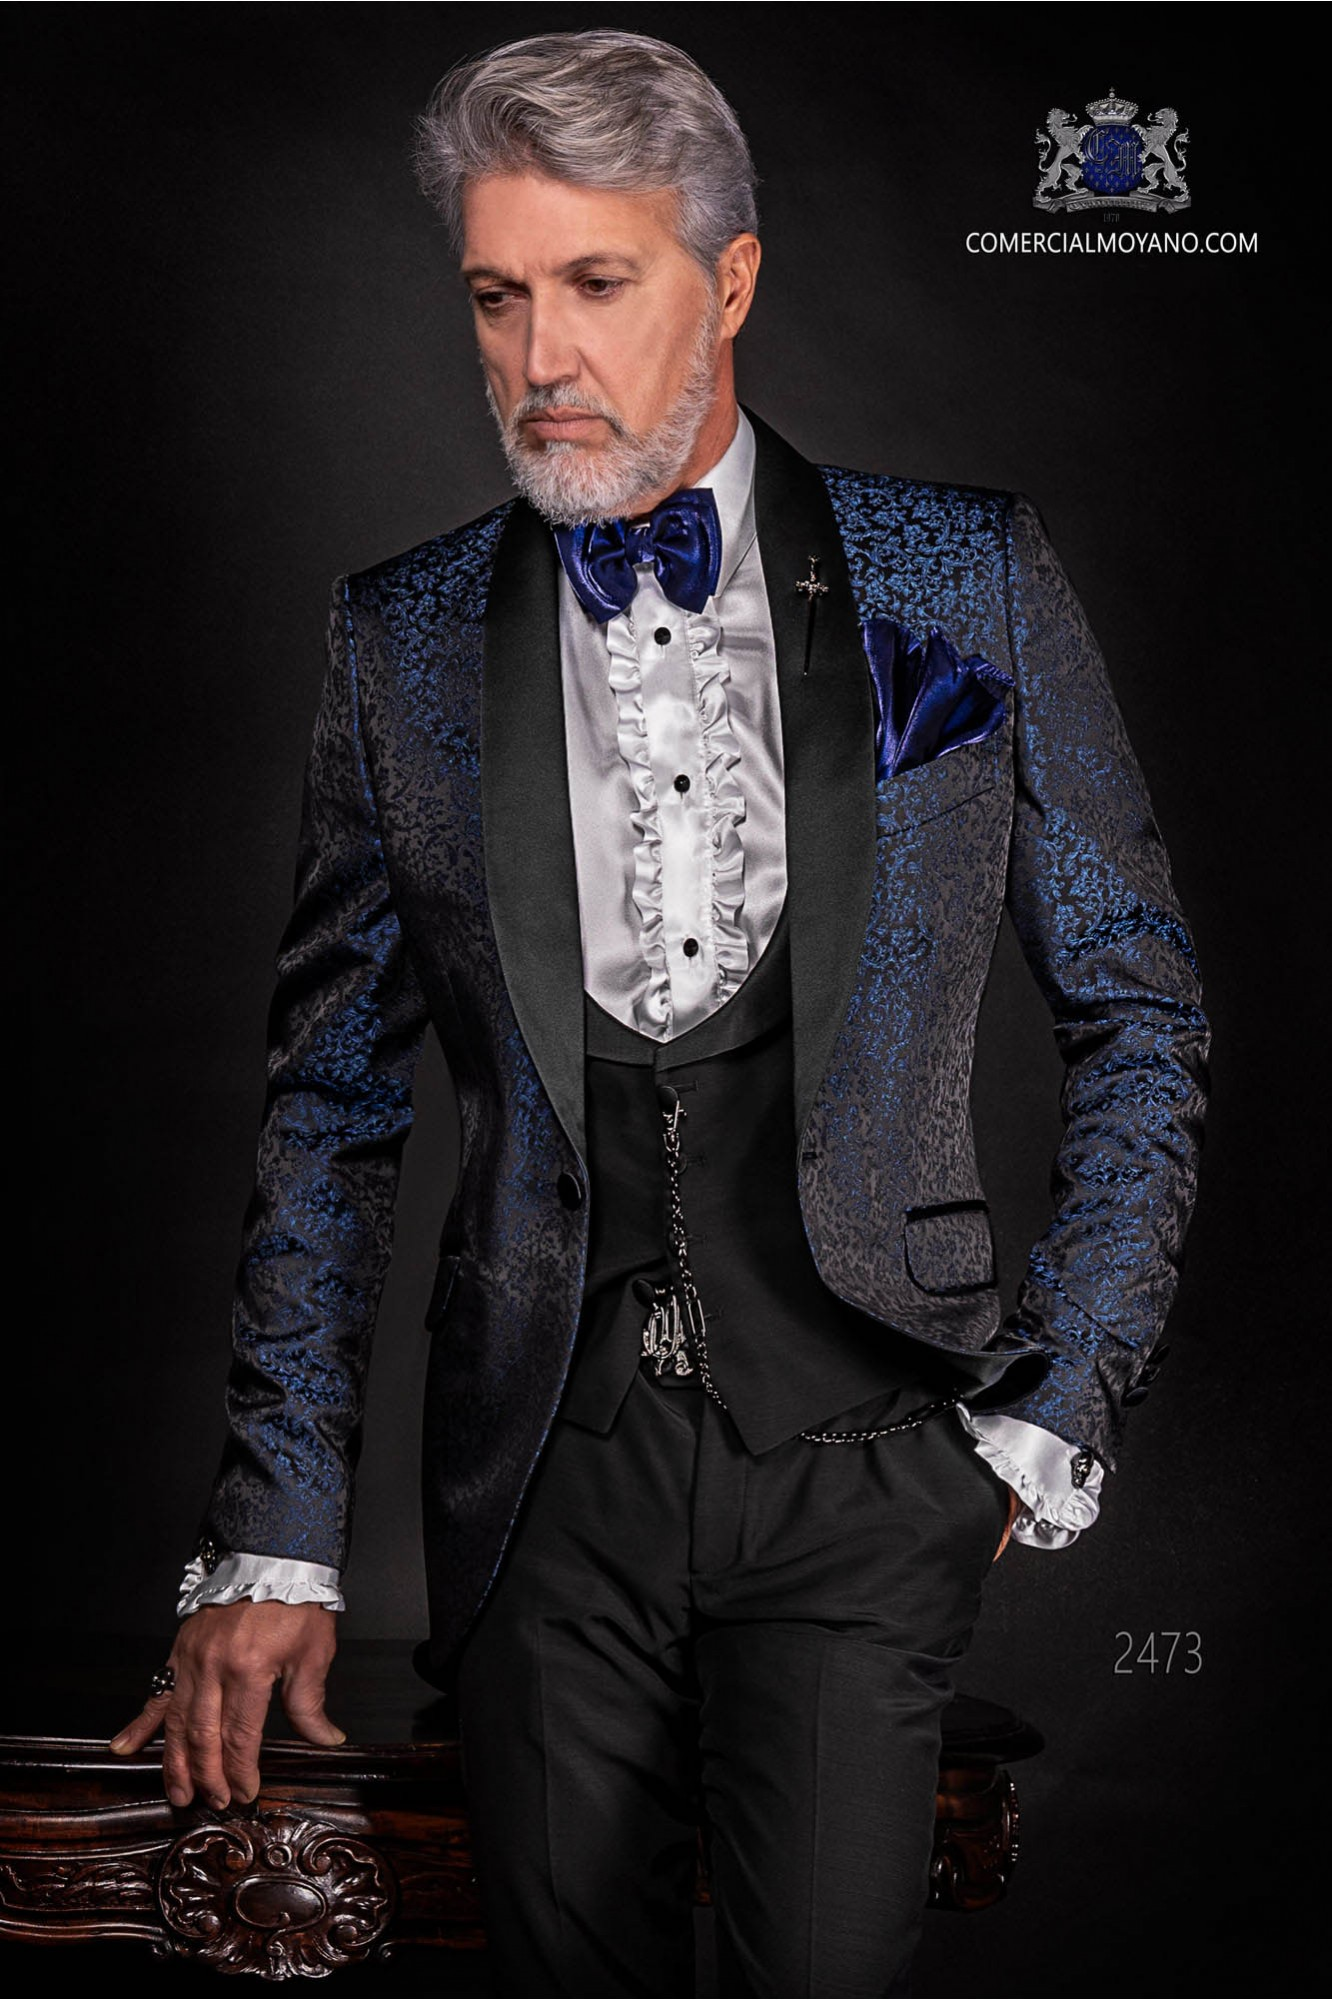 Bespoke black and blue silk dinner jacket combined with a black trousers